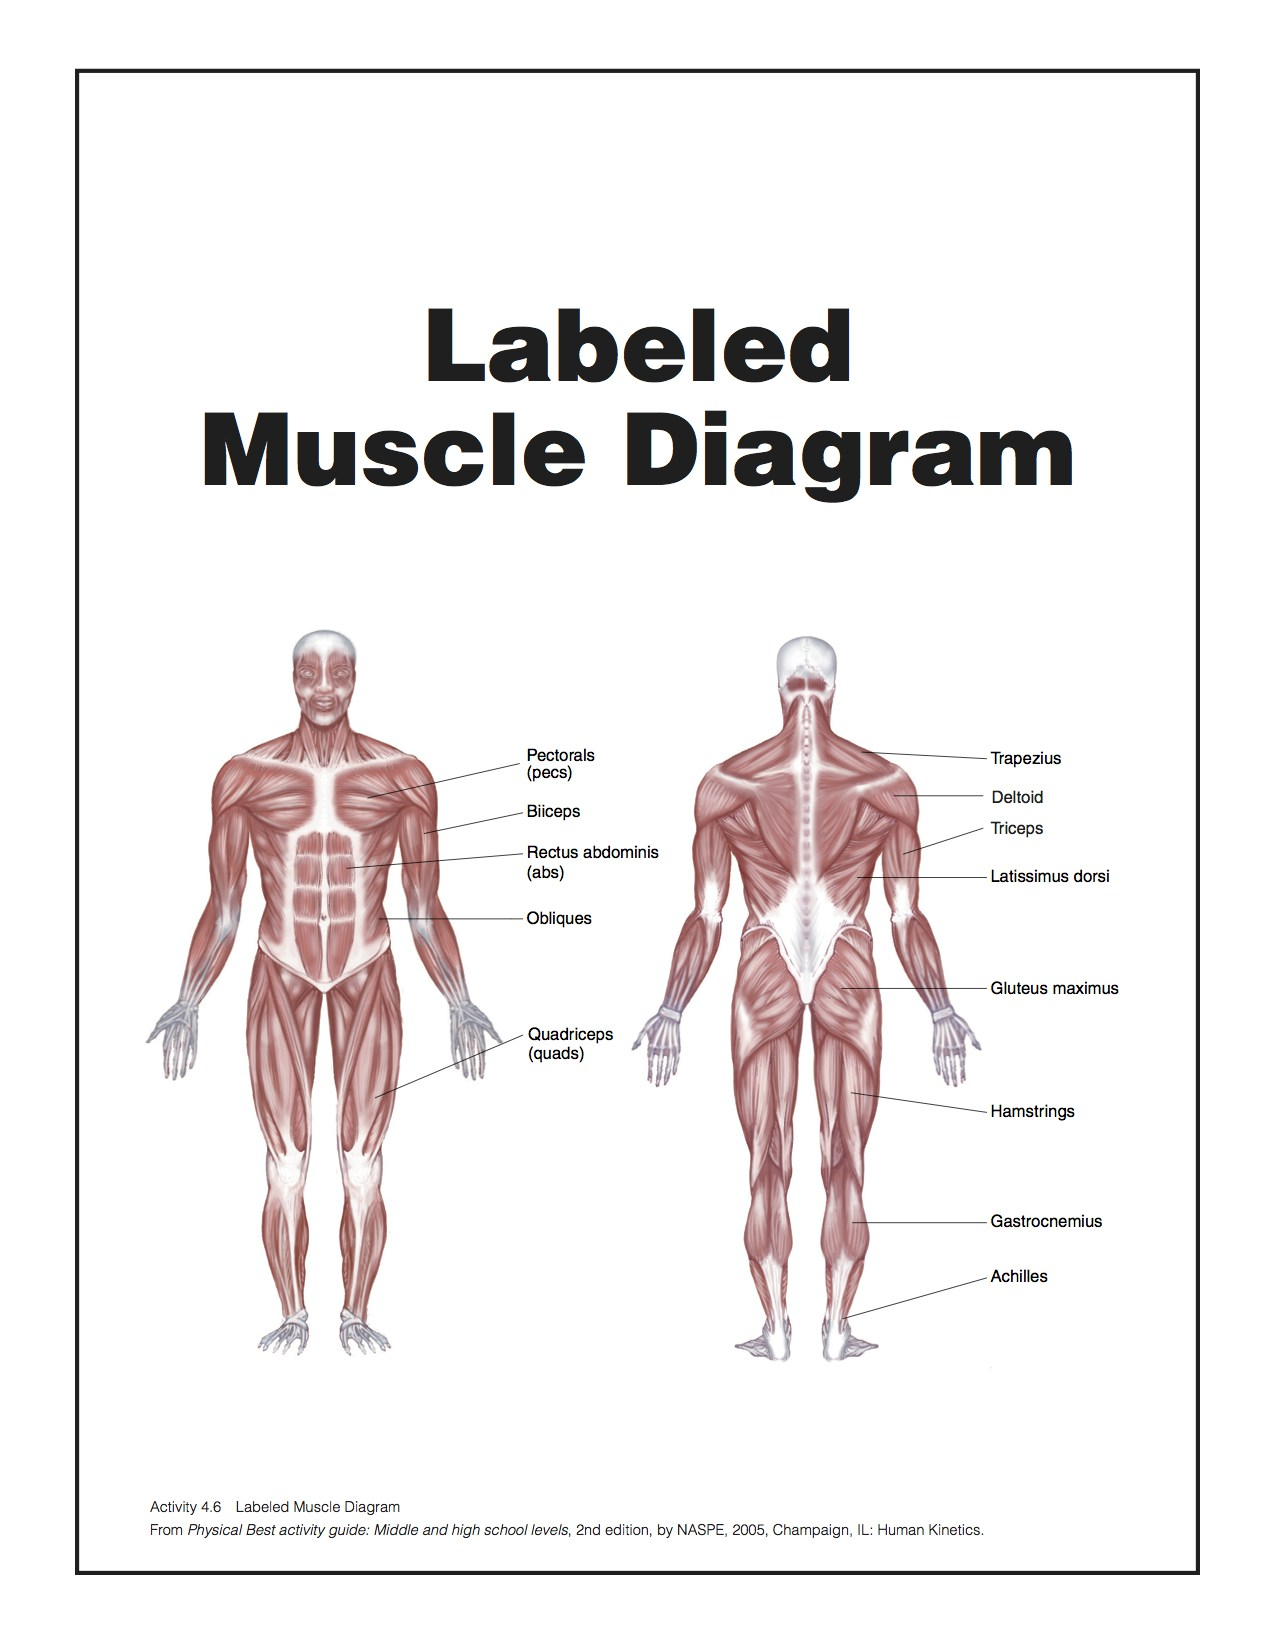 Muscle Diagrams of Major Muscles Exercised in Weight Training